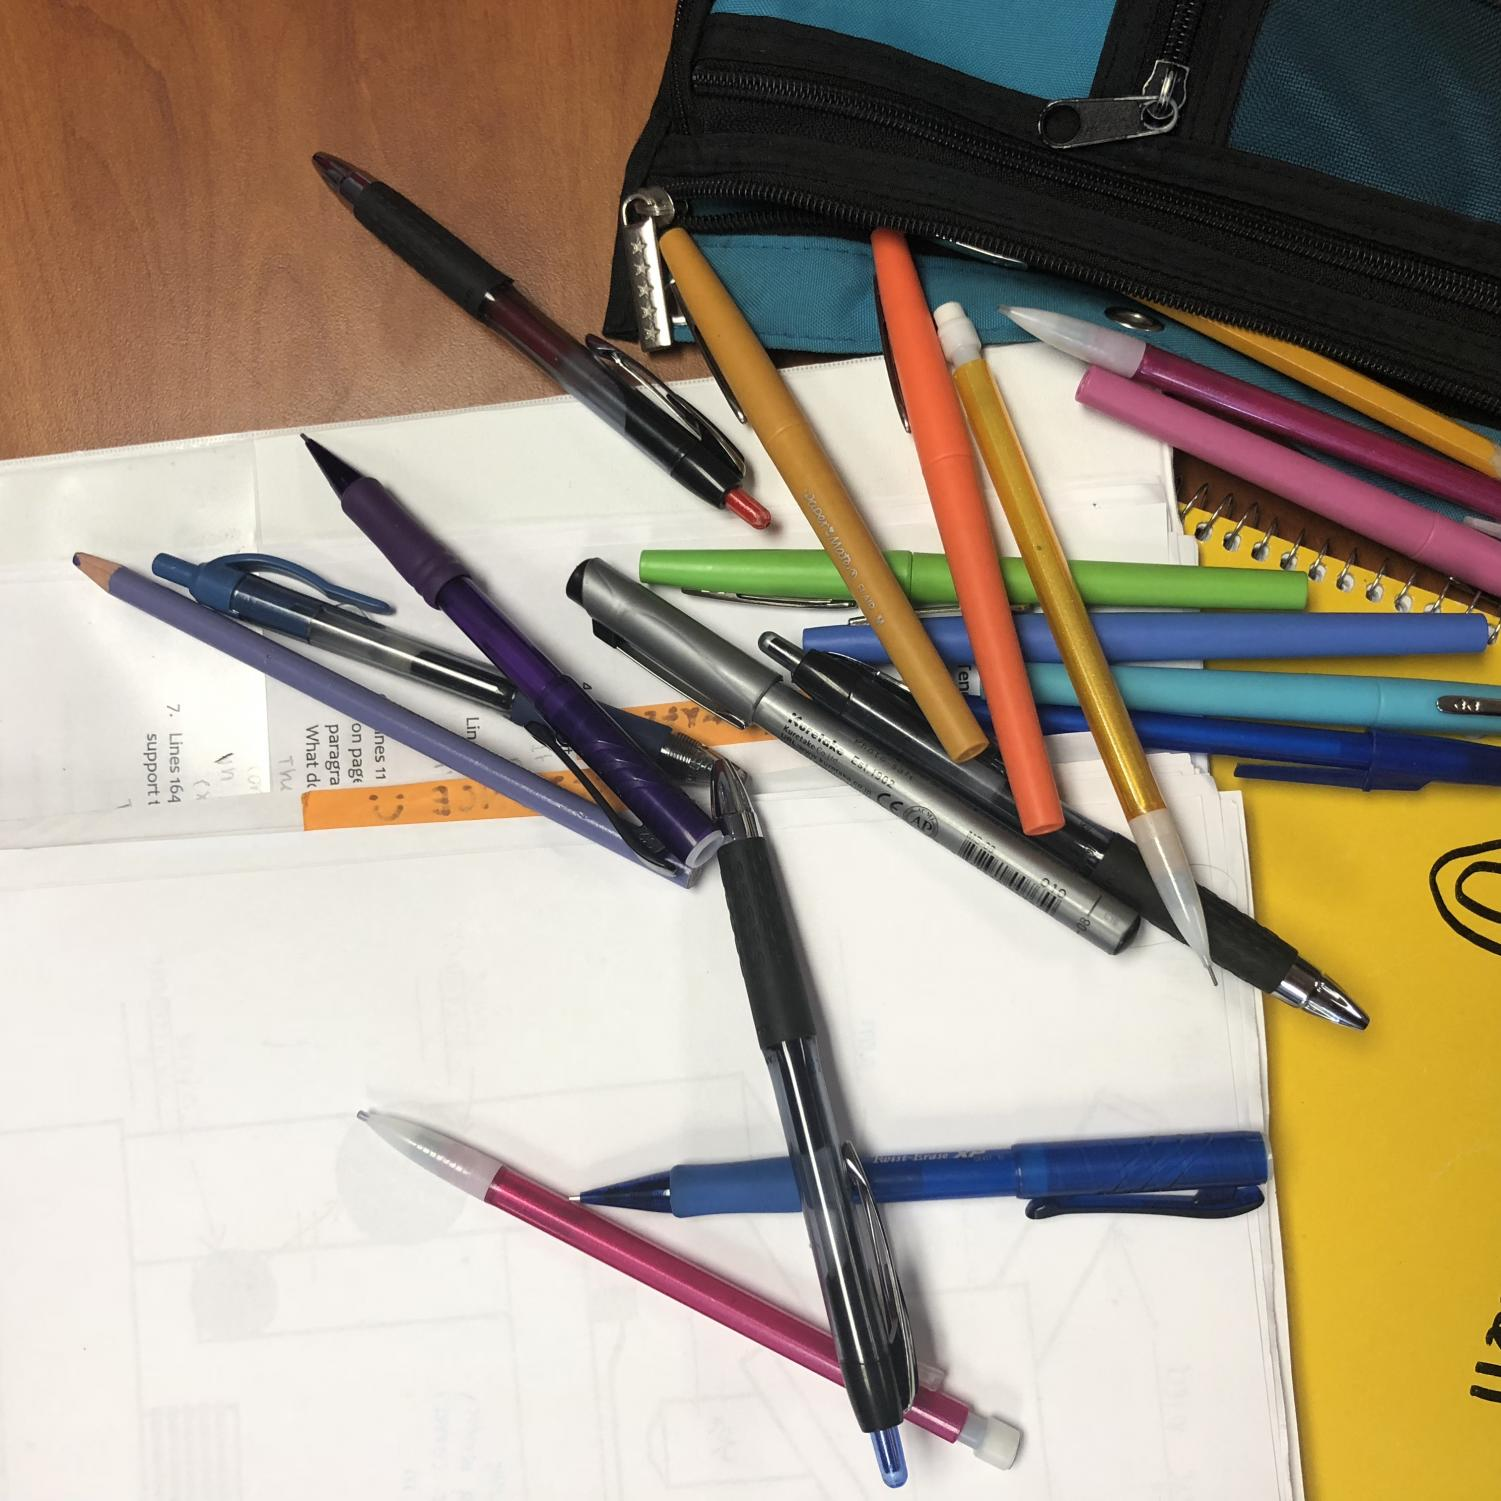 Studying for exams can result in stress, especially when students are disorganized.